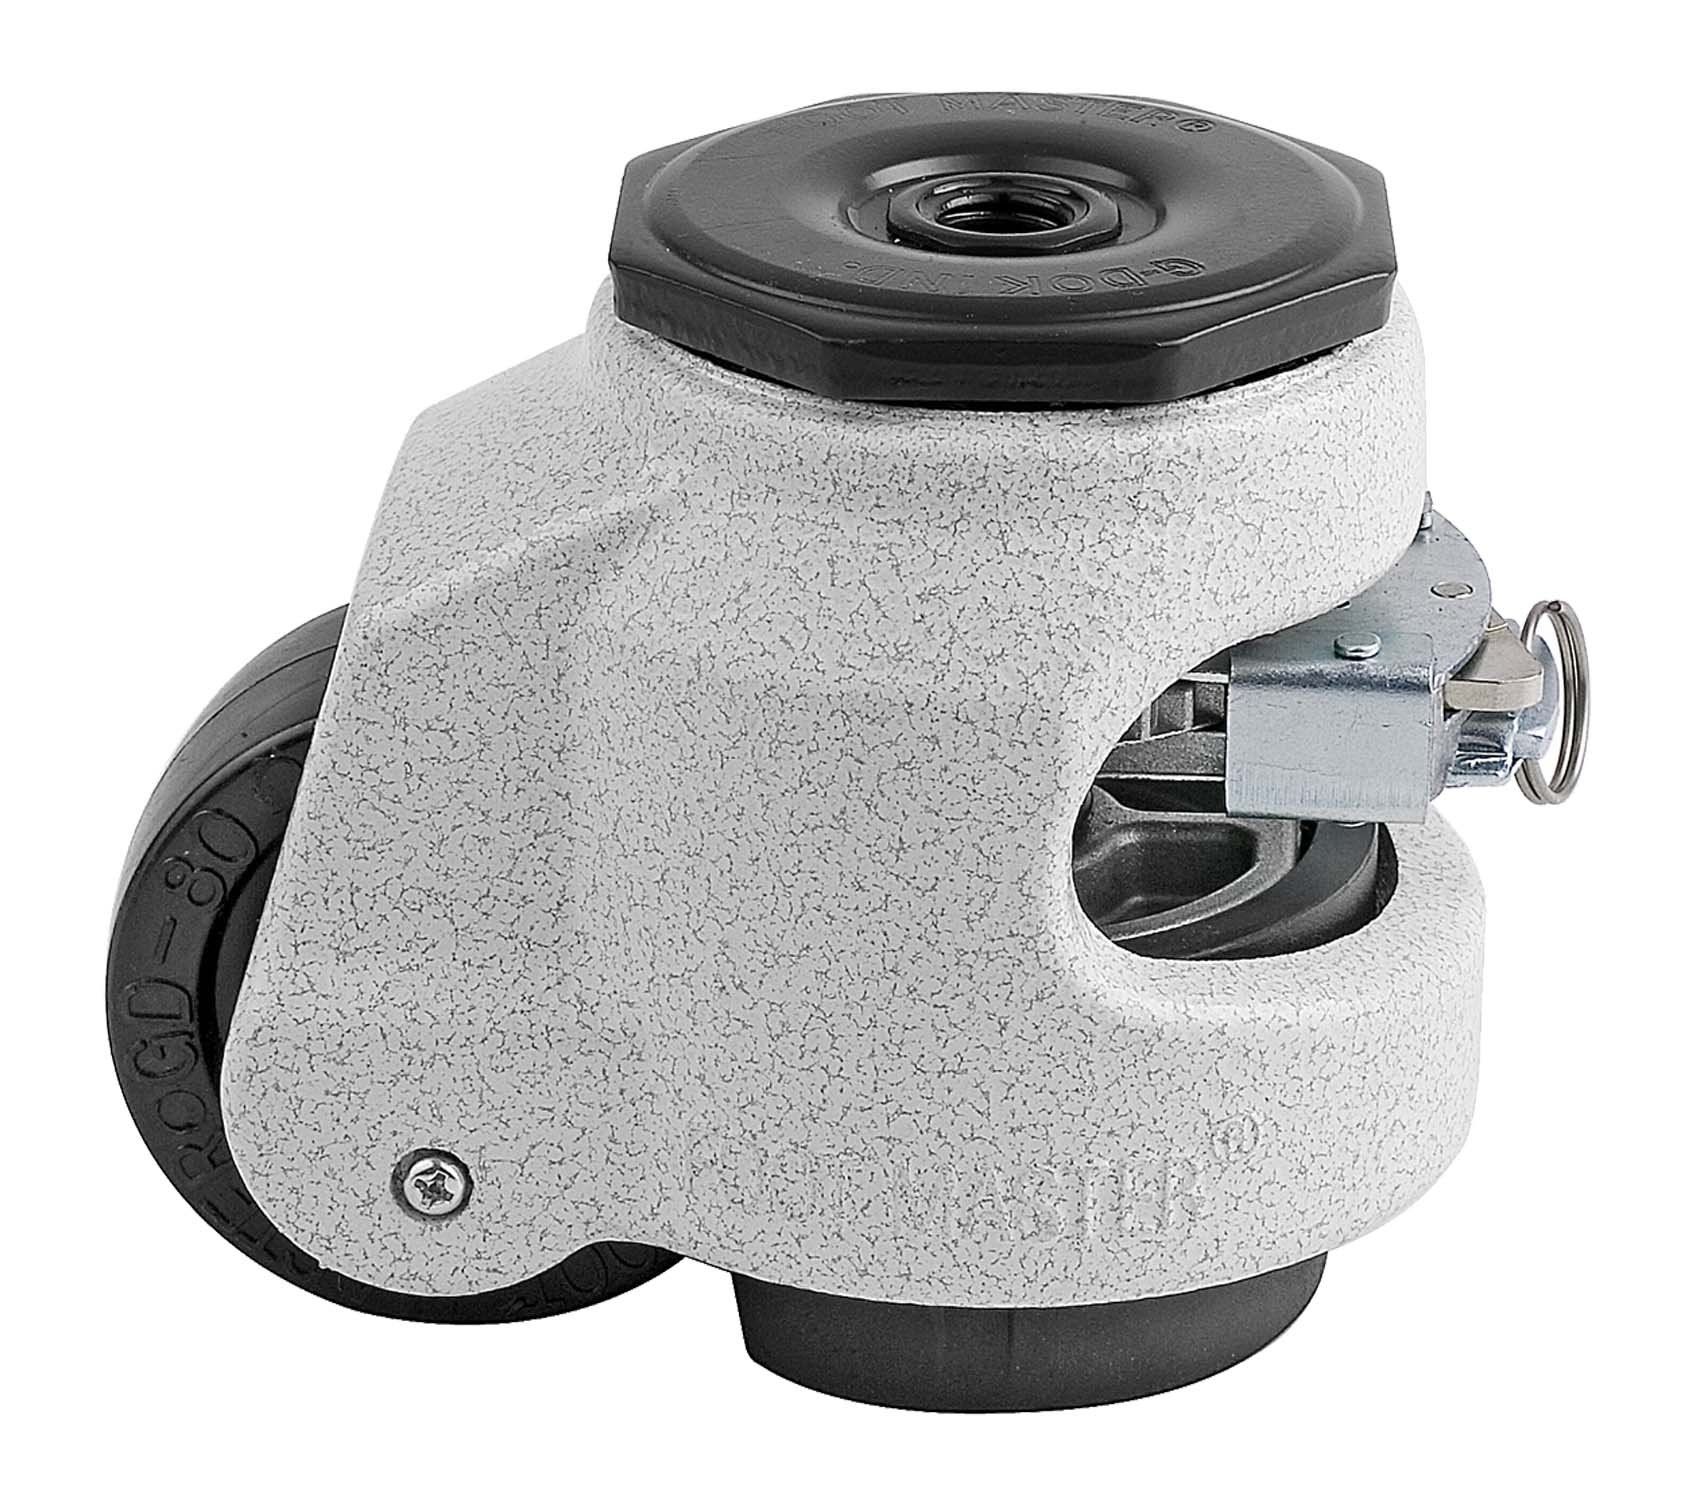 FOOTMASTER GDR-80S Nylon Wheel and NBR Pad Ratcheting Leveling Caster, 1100 lbs, Stem Mounted with 0.472'' Mounting Hole Diameter, Ivory